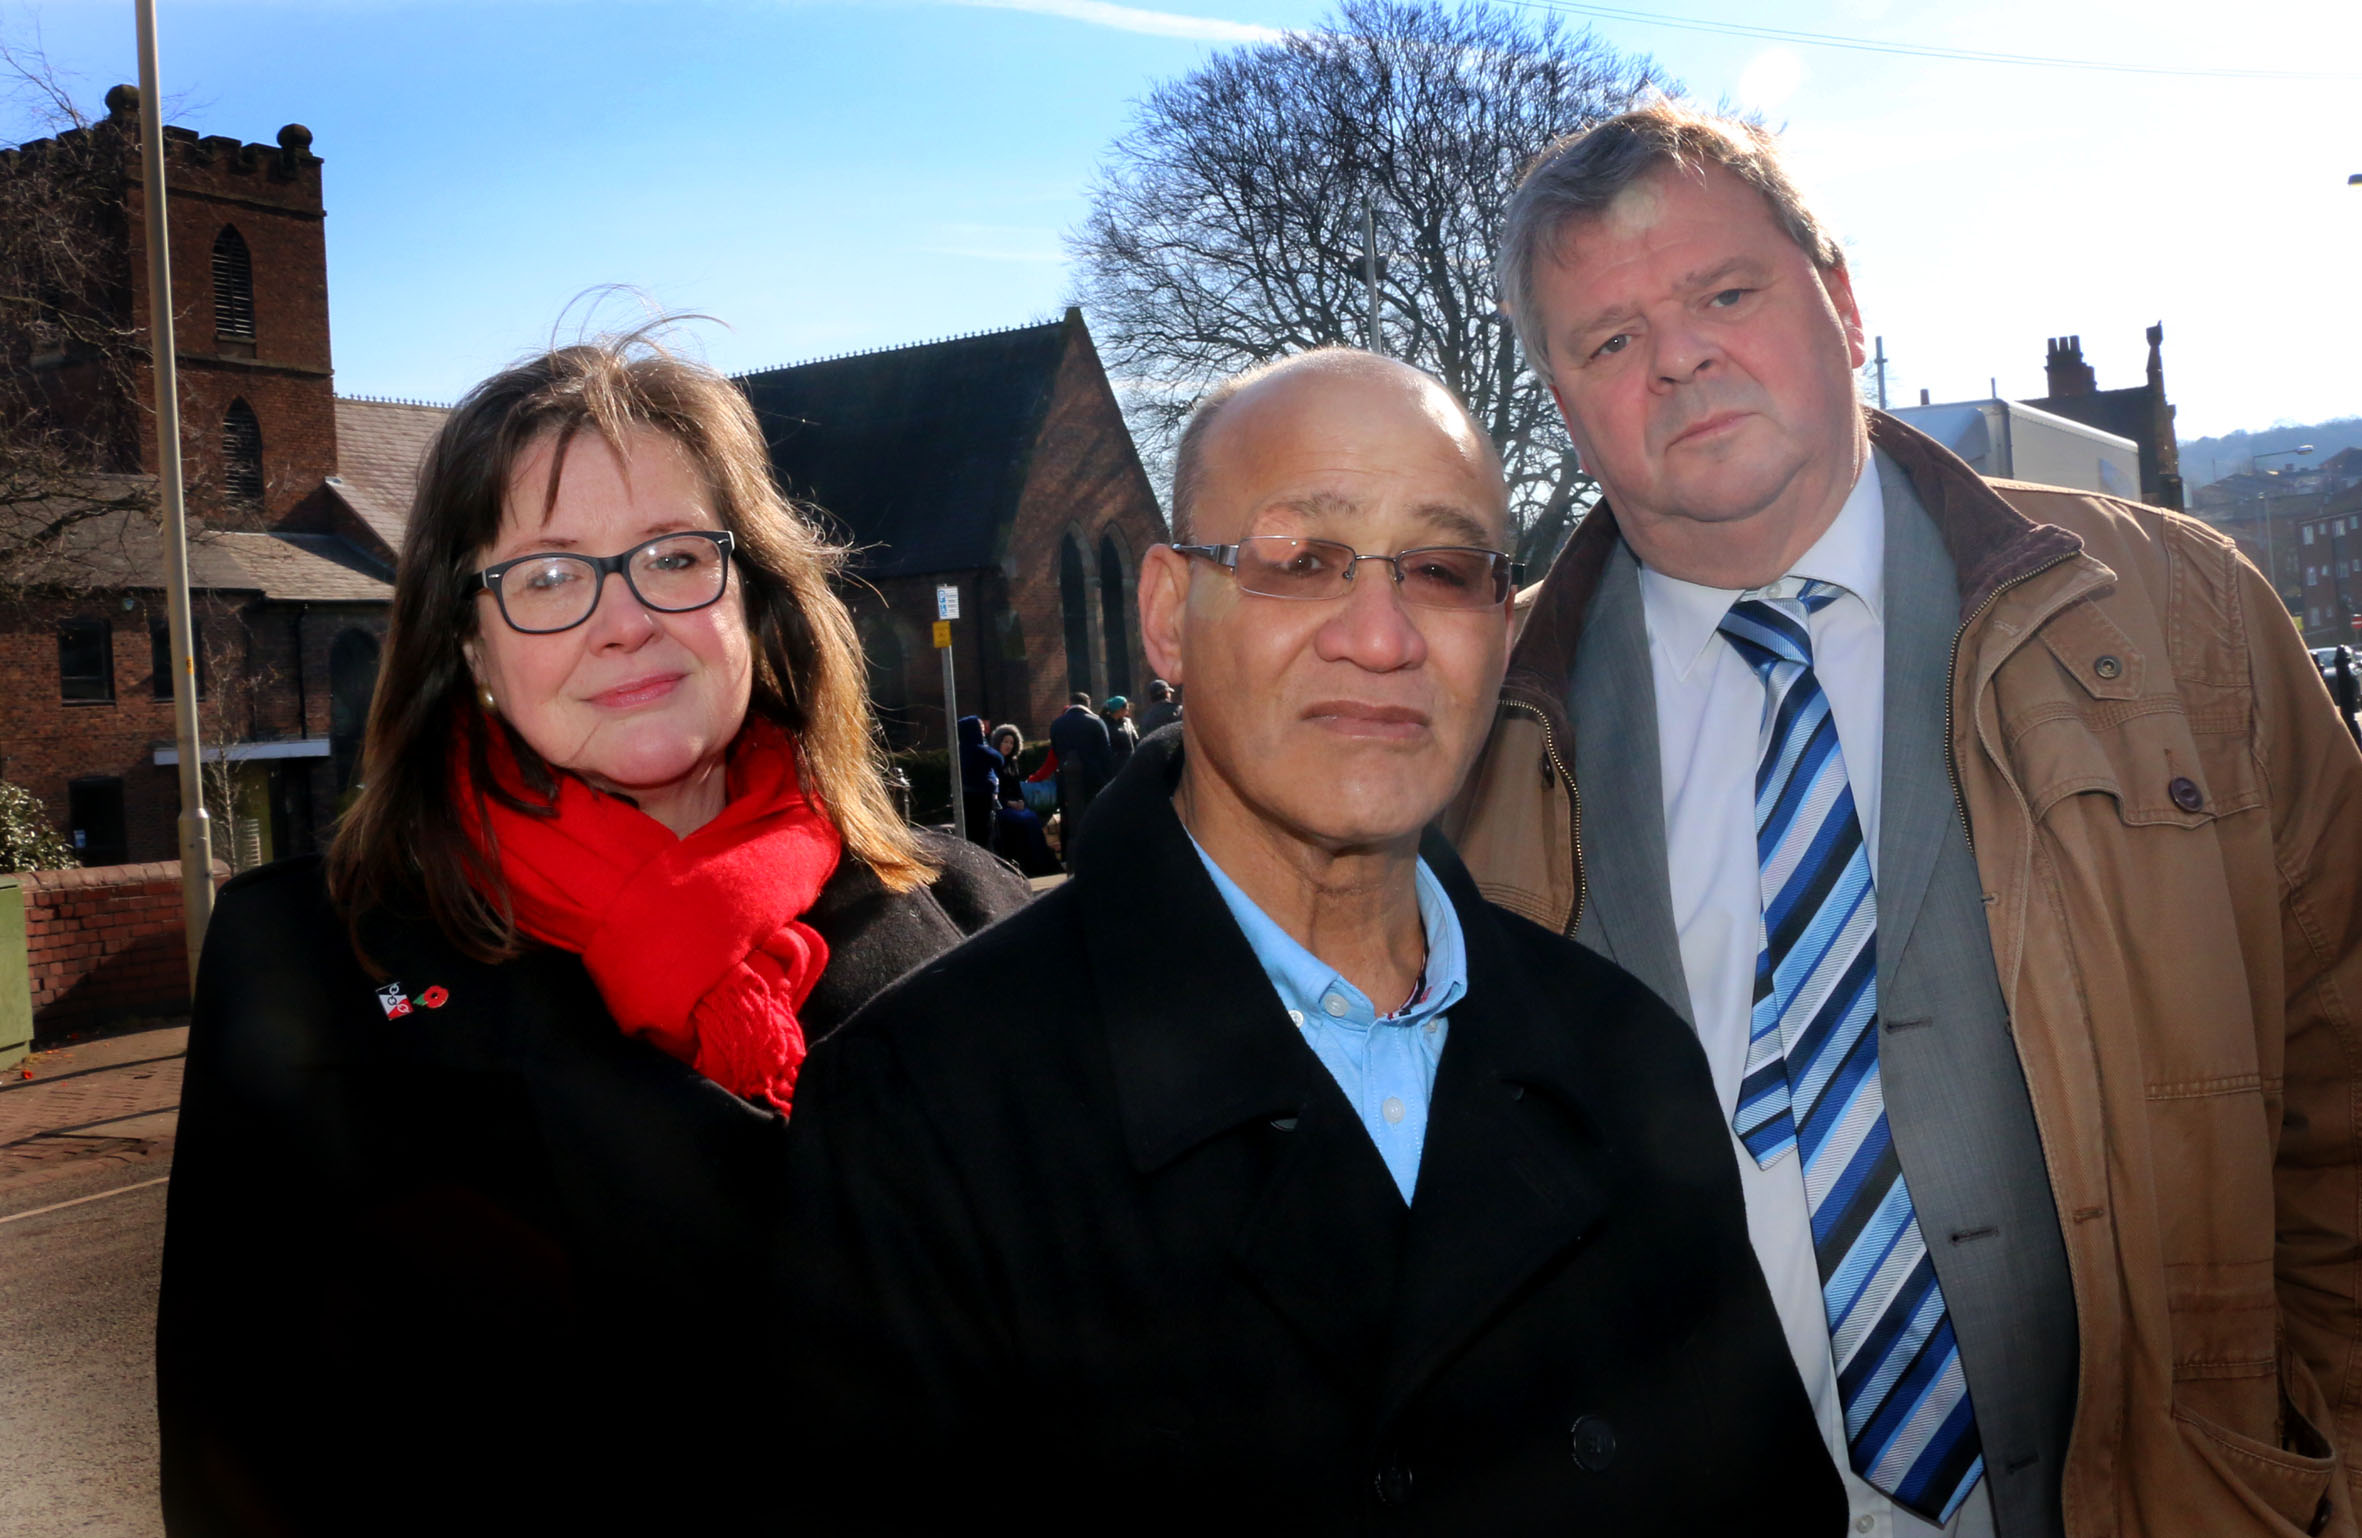 Councillors Gaye Partridge, Mohammed Hanif and Tim Crumpton